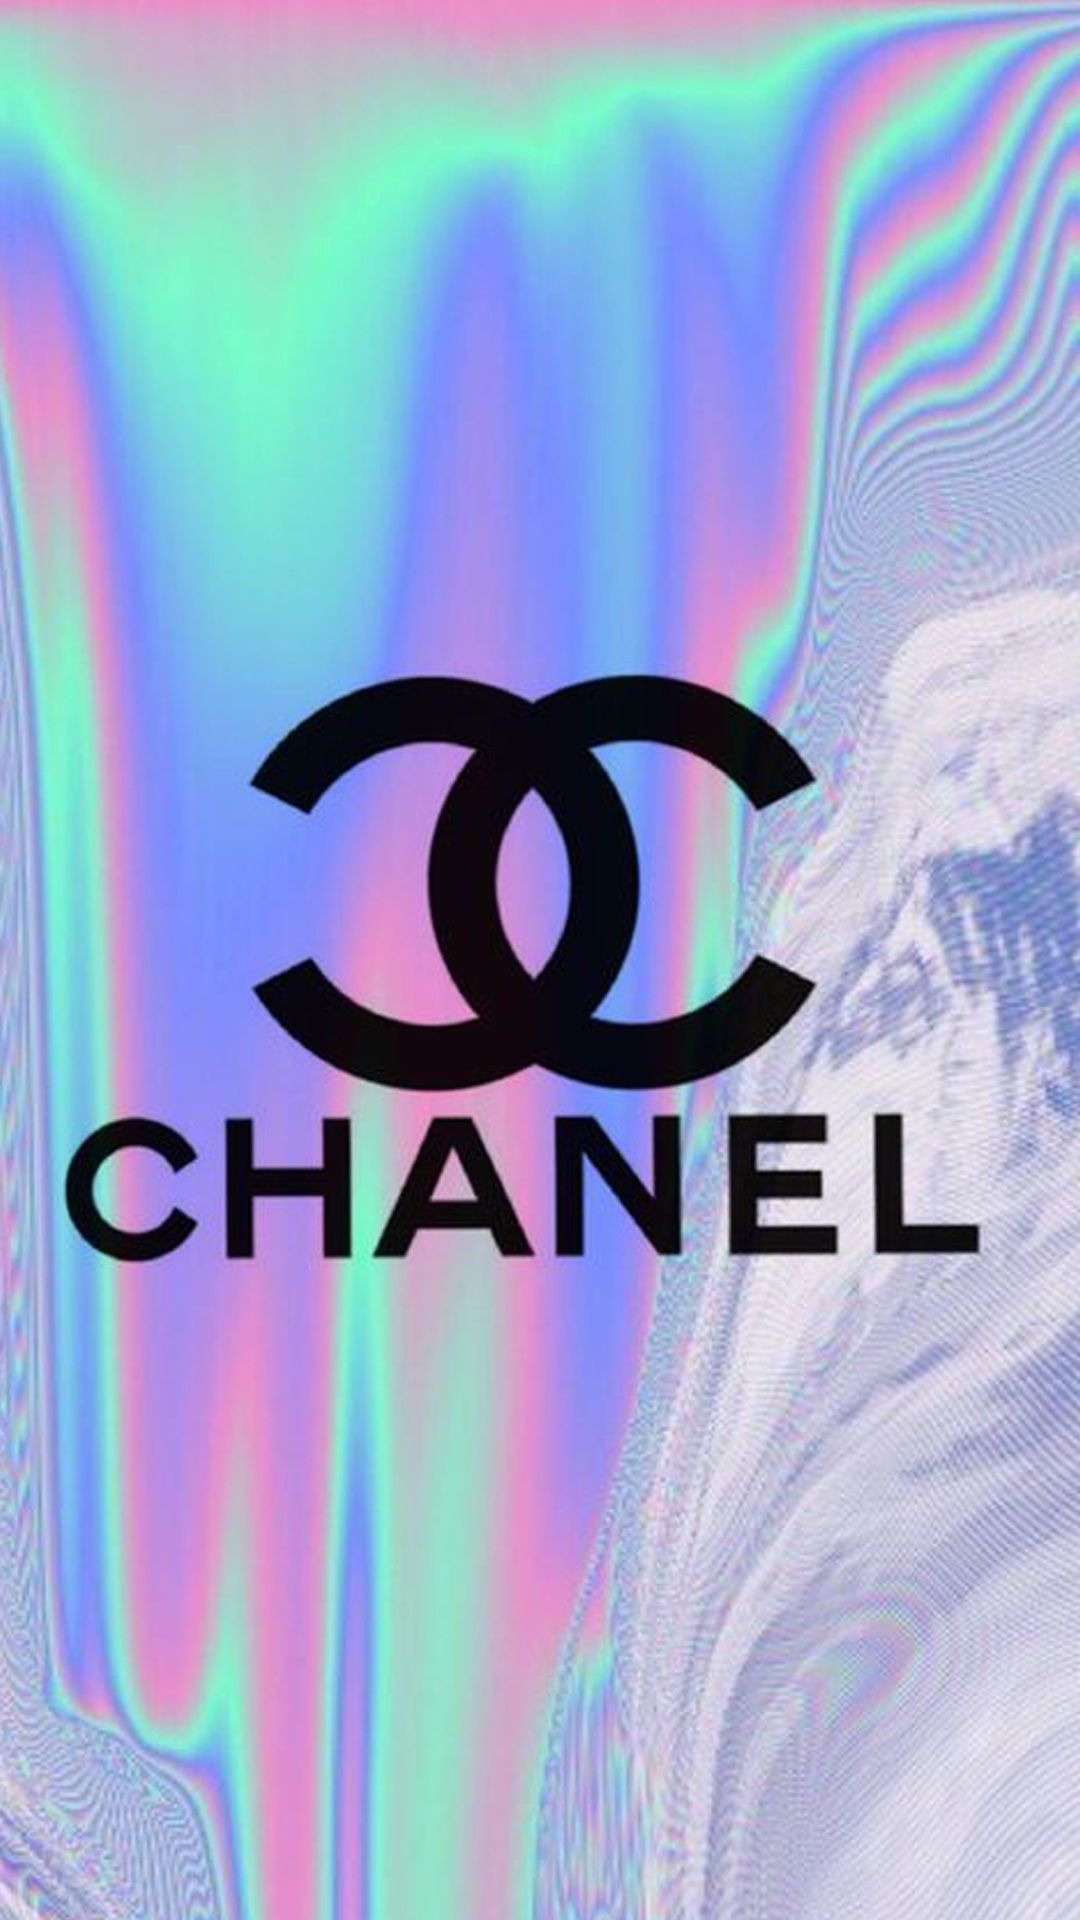 CHANEL Iphone wallpaper girly, Chanel wallpapers, Cute